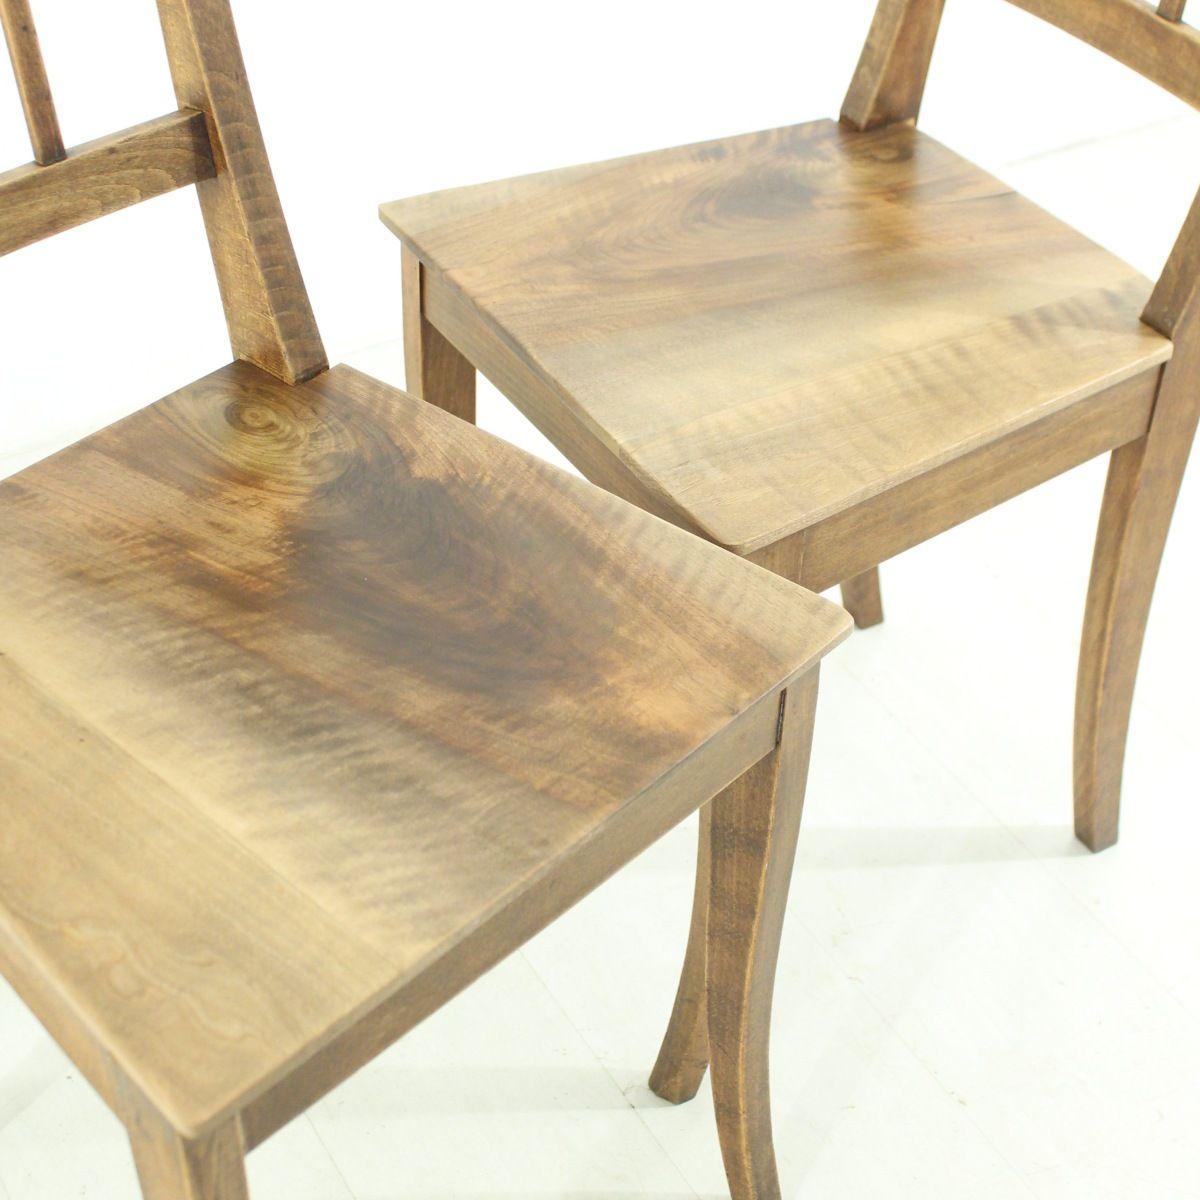 Antique Wooden Chairs 1890s Set Of 2 For Sale At Pamono